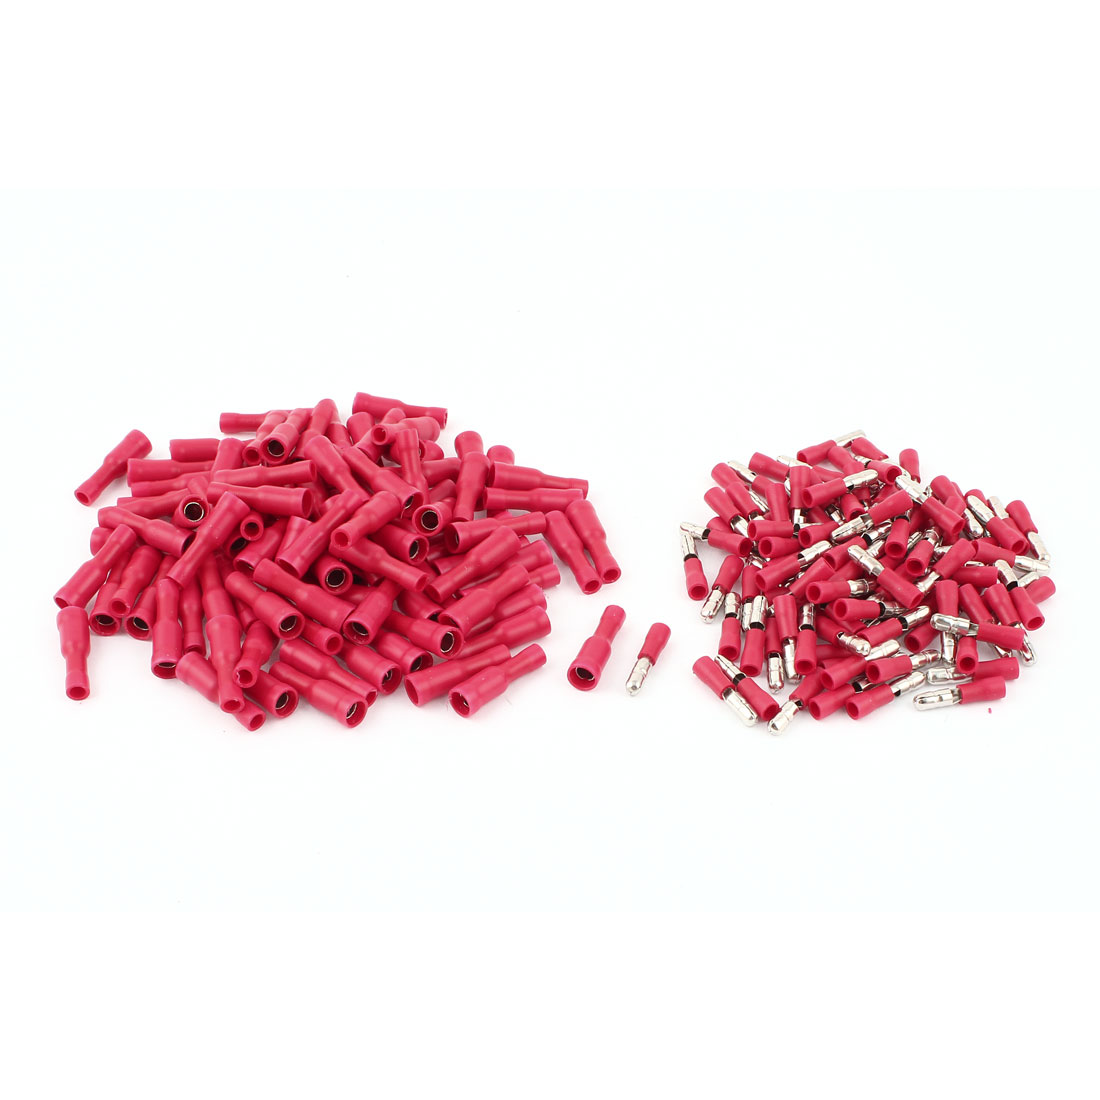 100 Pair 22-16 AWG Cable Wire Connector Male Female Crimp Terminals